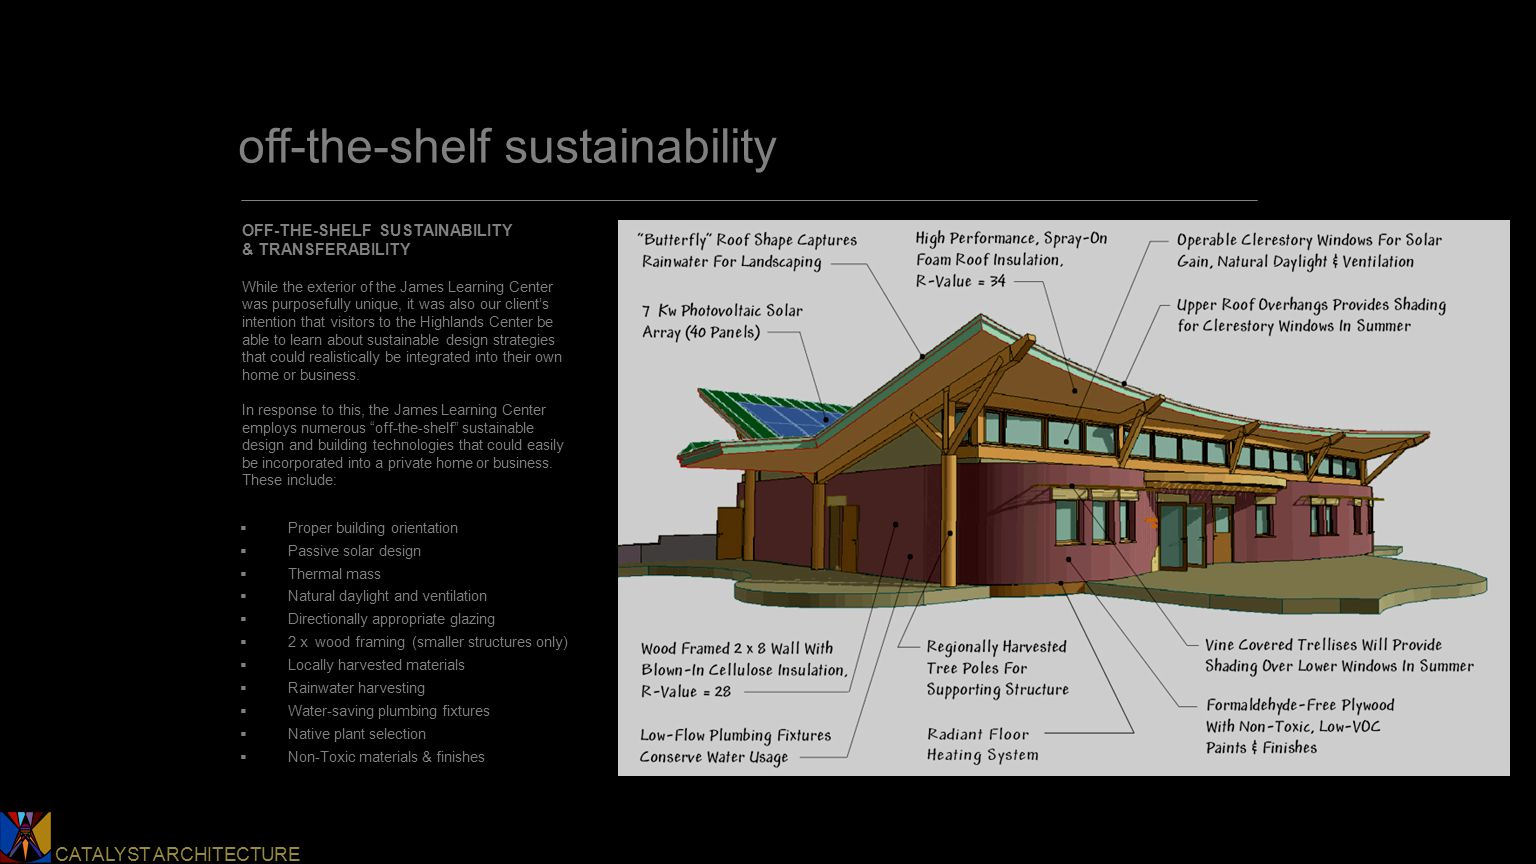 Catalyst Architecture CATALYST ARCHITECTURE off-the-shelf sustainability OFF-THE-SHELF SUSTAINABILITY & TRANSFERABILITY While the exterior of the James Learning Center was purposefully unique, it was also our client's intention that visitors to the Highlands Center be able to learn about sustainable design strategies that could realistically be integrated into their own home or business.